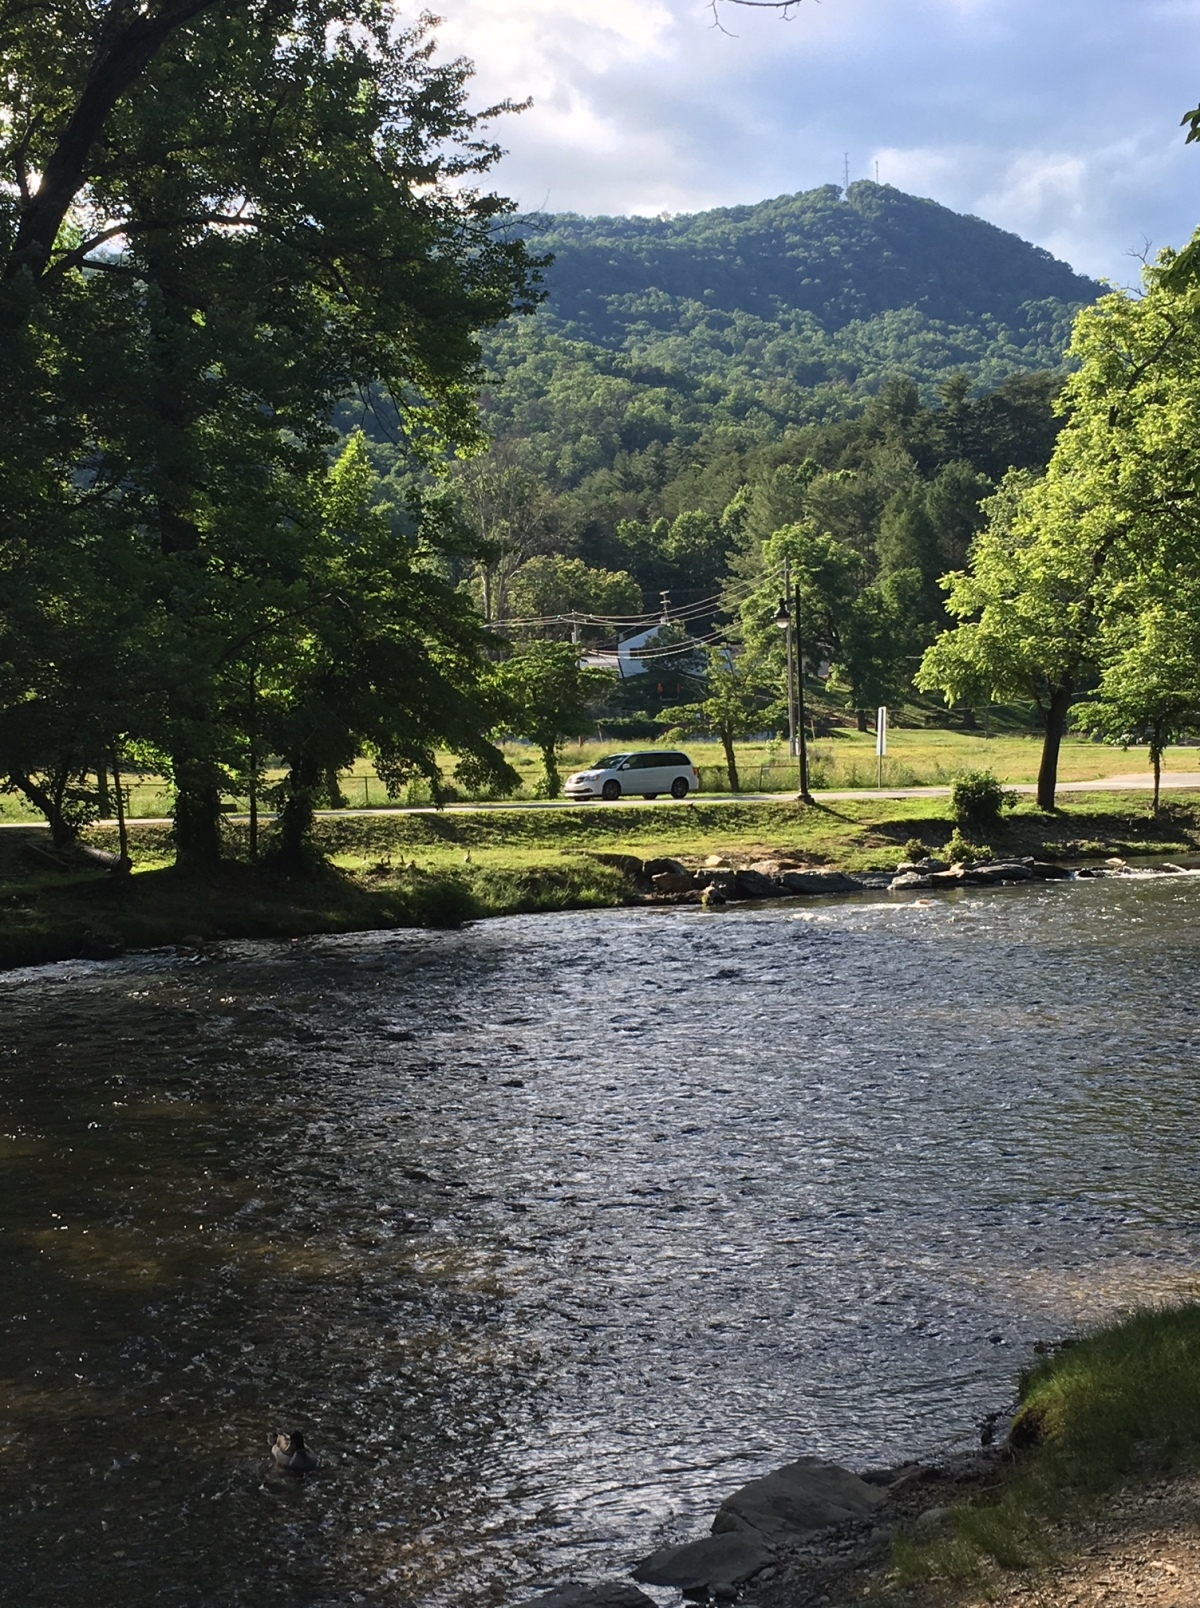 The river with the Smoky Mountains in the background